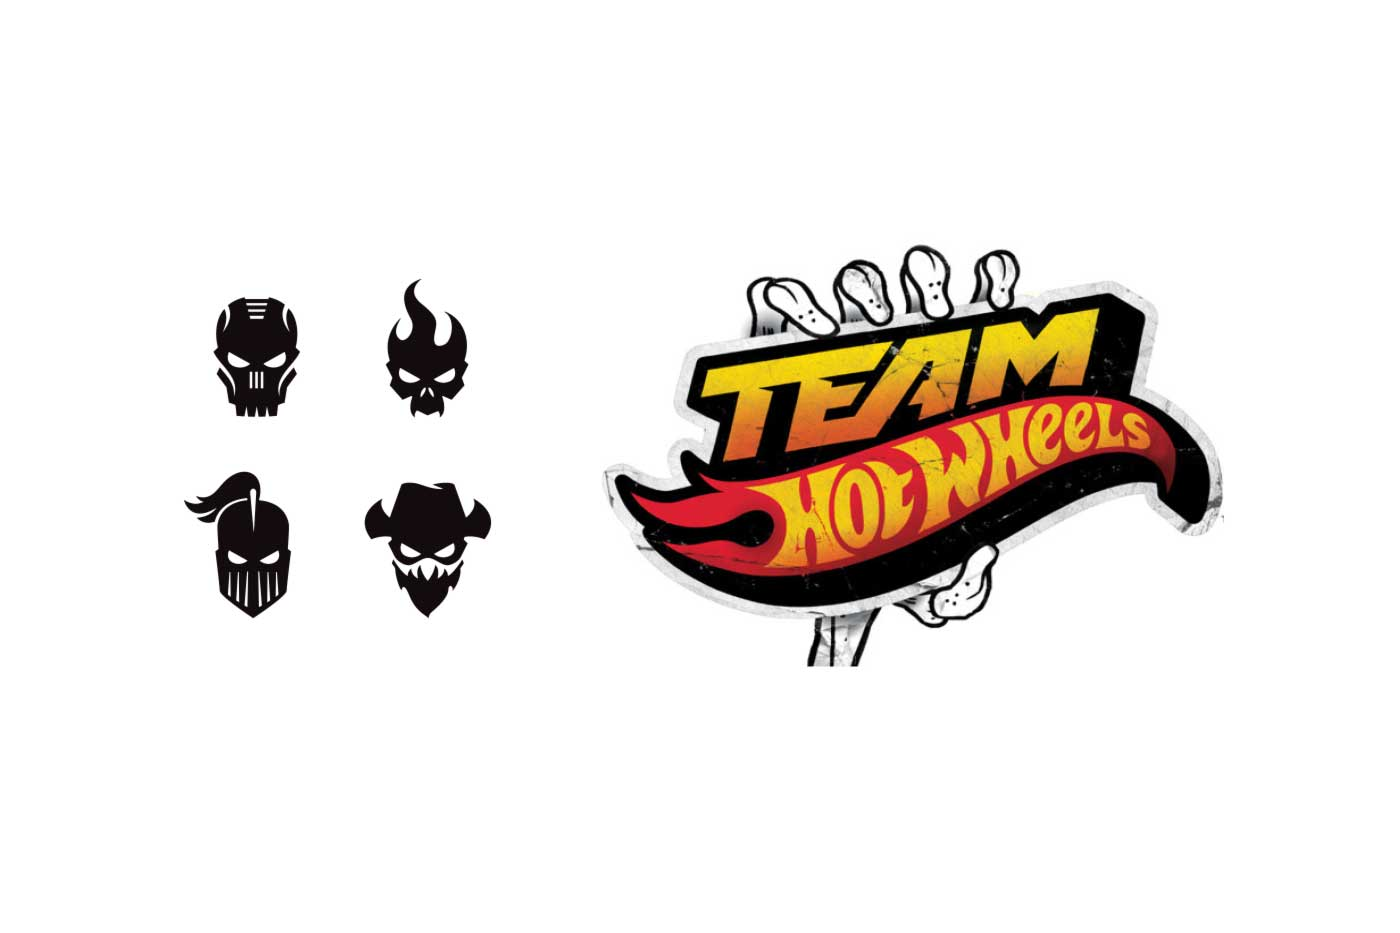 Mattels team hot wheels for real skull flames logos